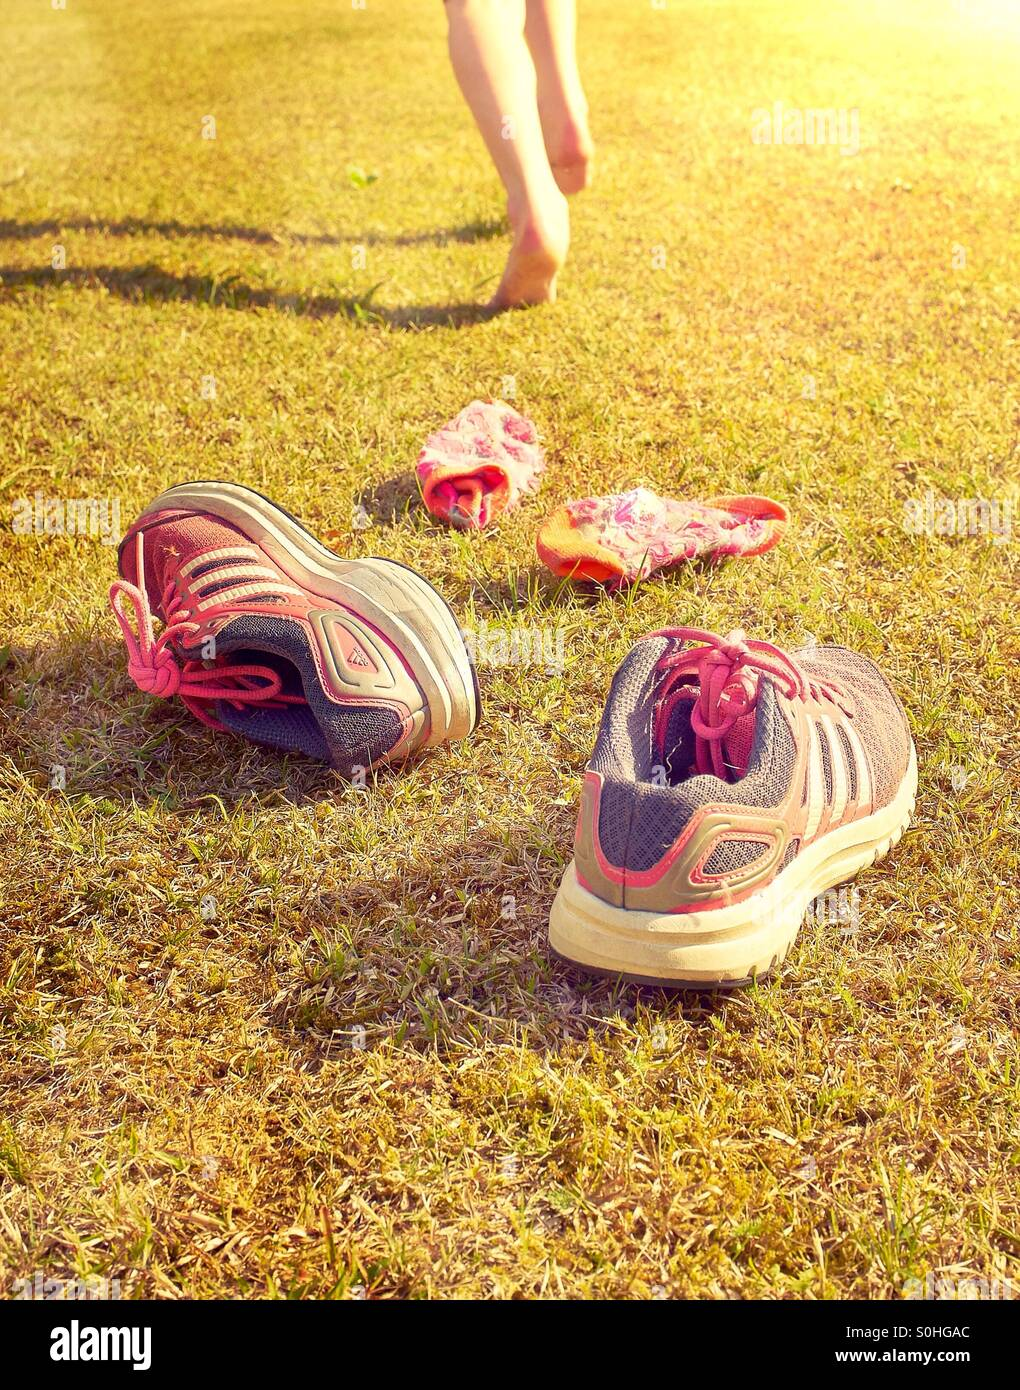 Summer is here - no need for socks and shoes Stock Photo